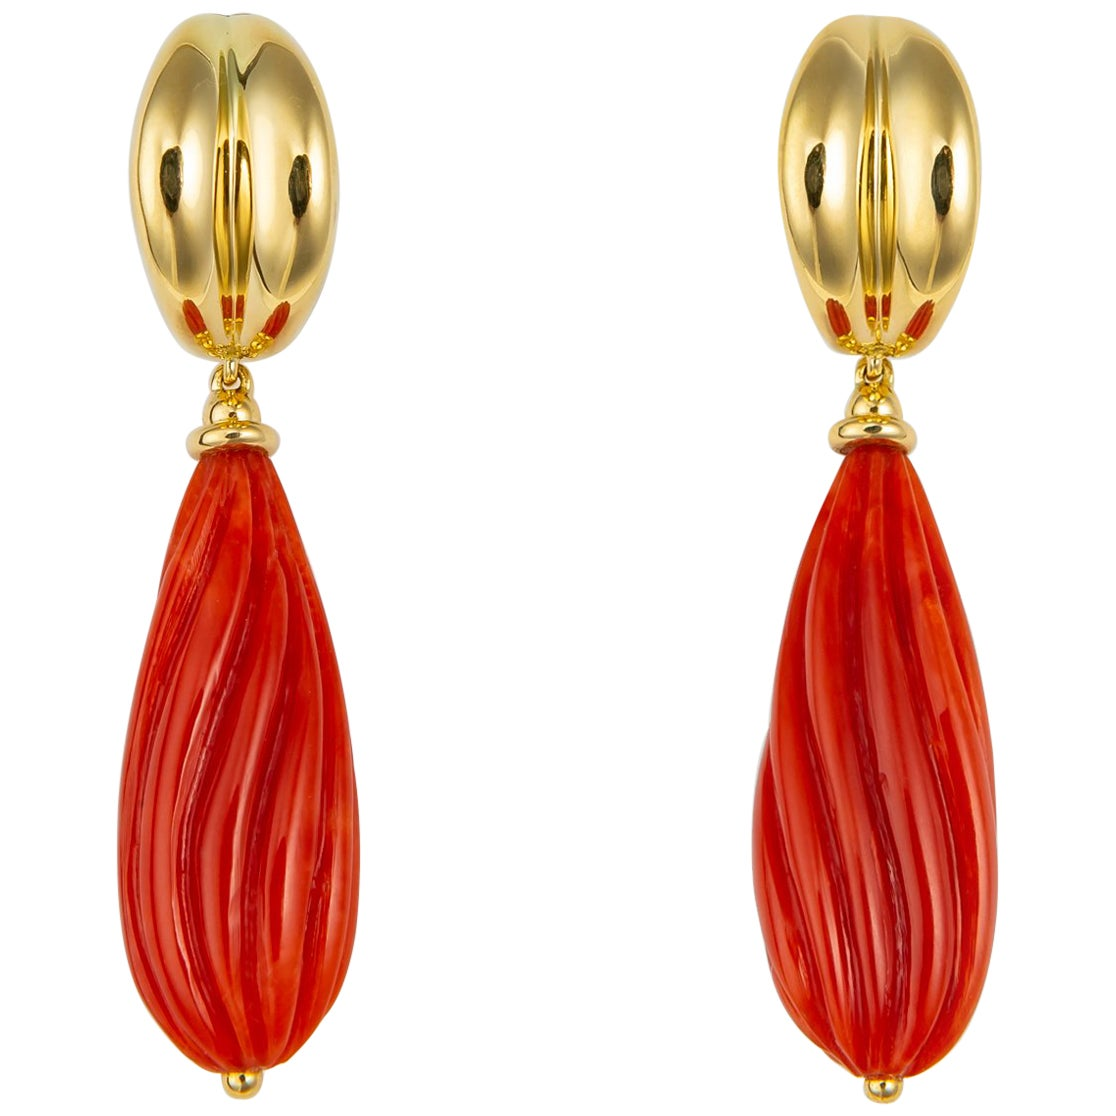 Vintage Tiffany & Co. Carved Coral Drop Earrings